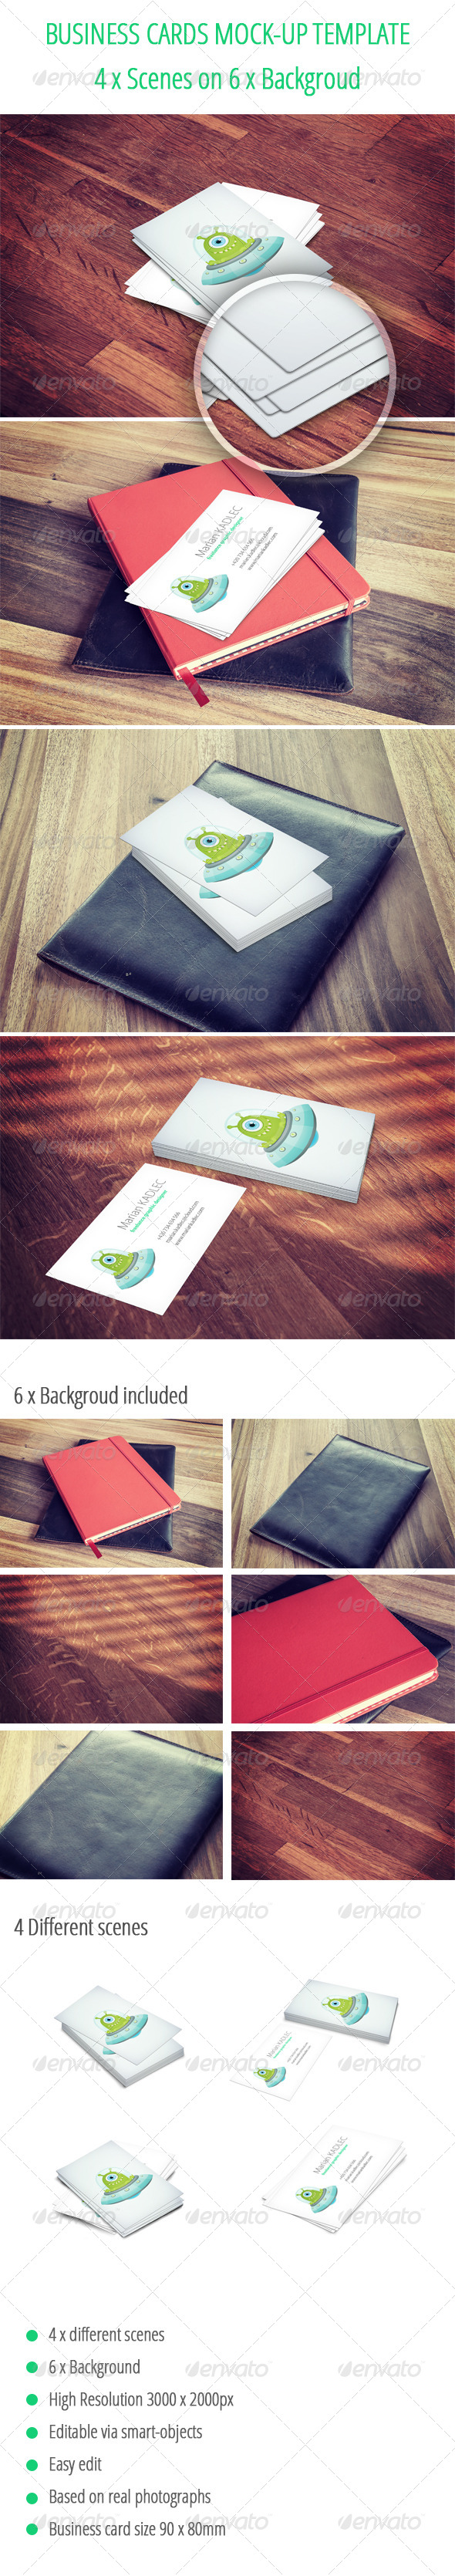 GraphicRiver Business Card Mock-Up Template 24 combination 6518022